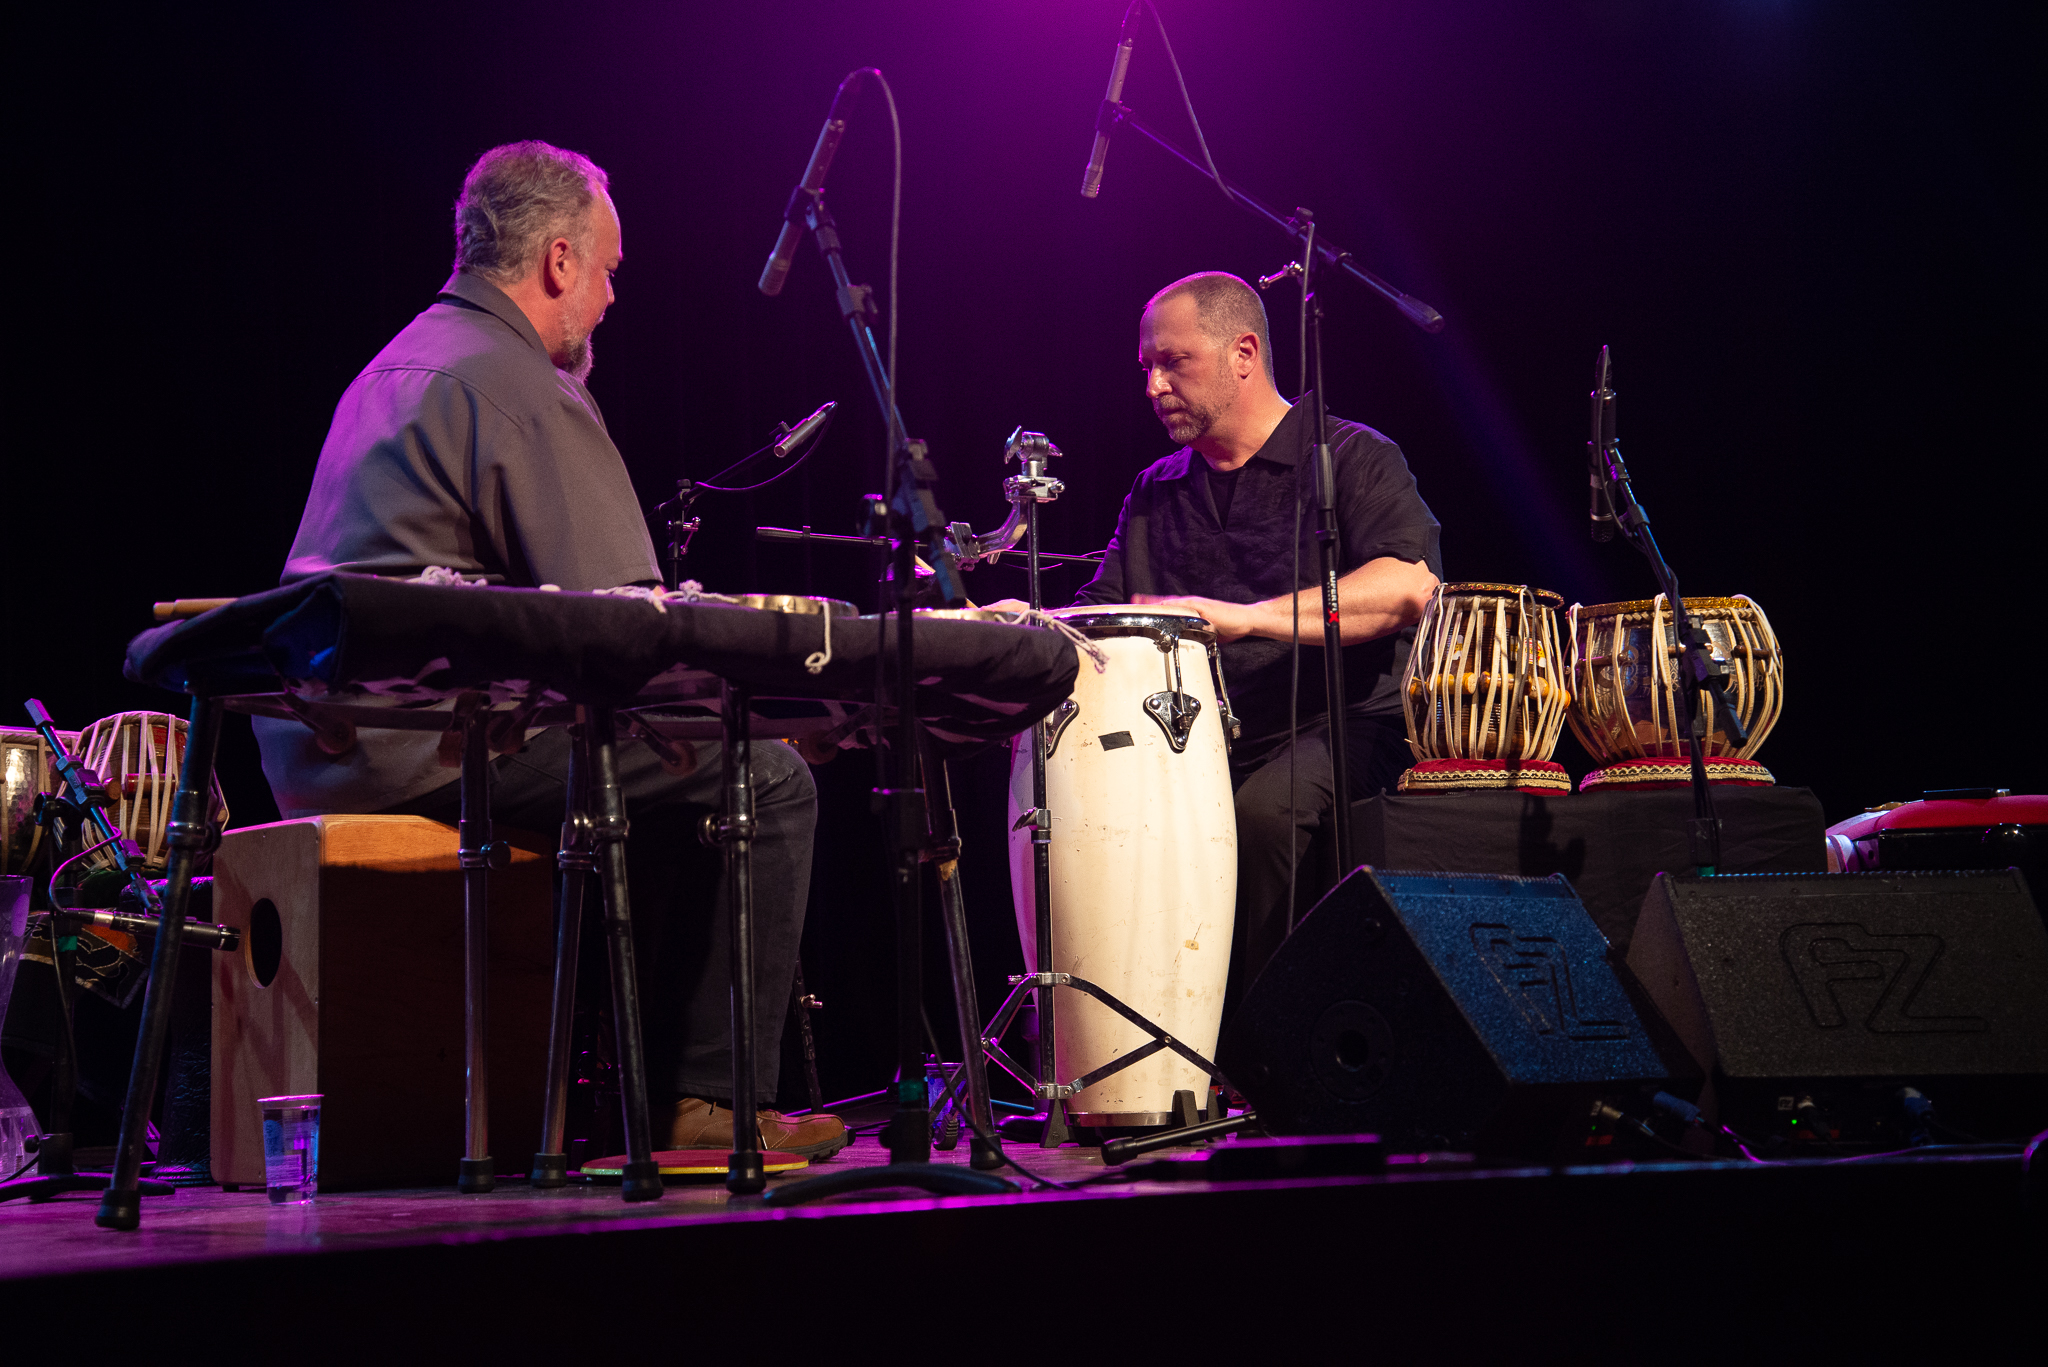 Hands On'Semble (duo: Randy Gloss & Austin Wrinkle), 2FIP FESTIVAL INTERNACIONAL DE PERCUSSÃO DE CURITIBA, July 21st, 2018.  photo: alex figueiredo